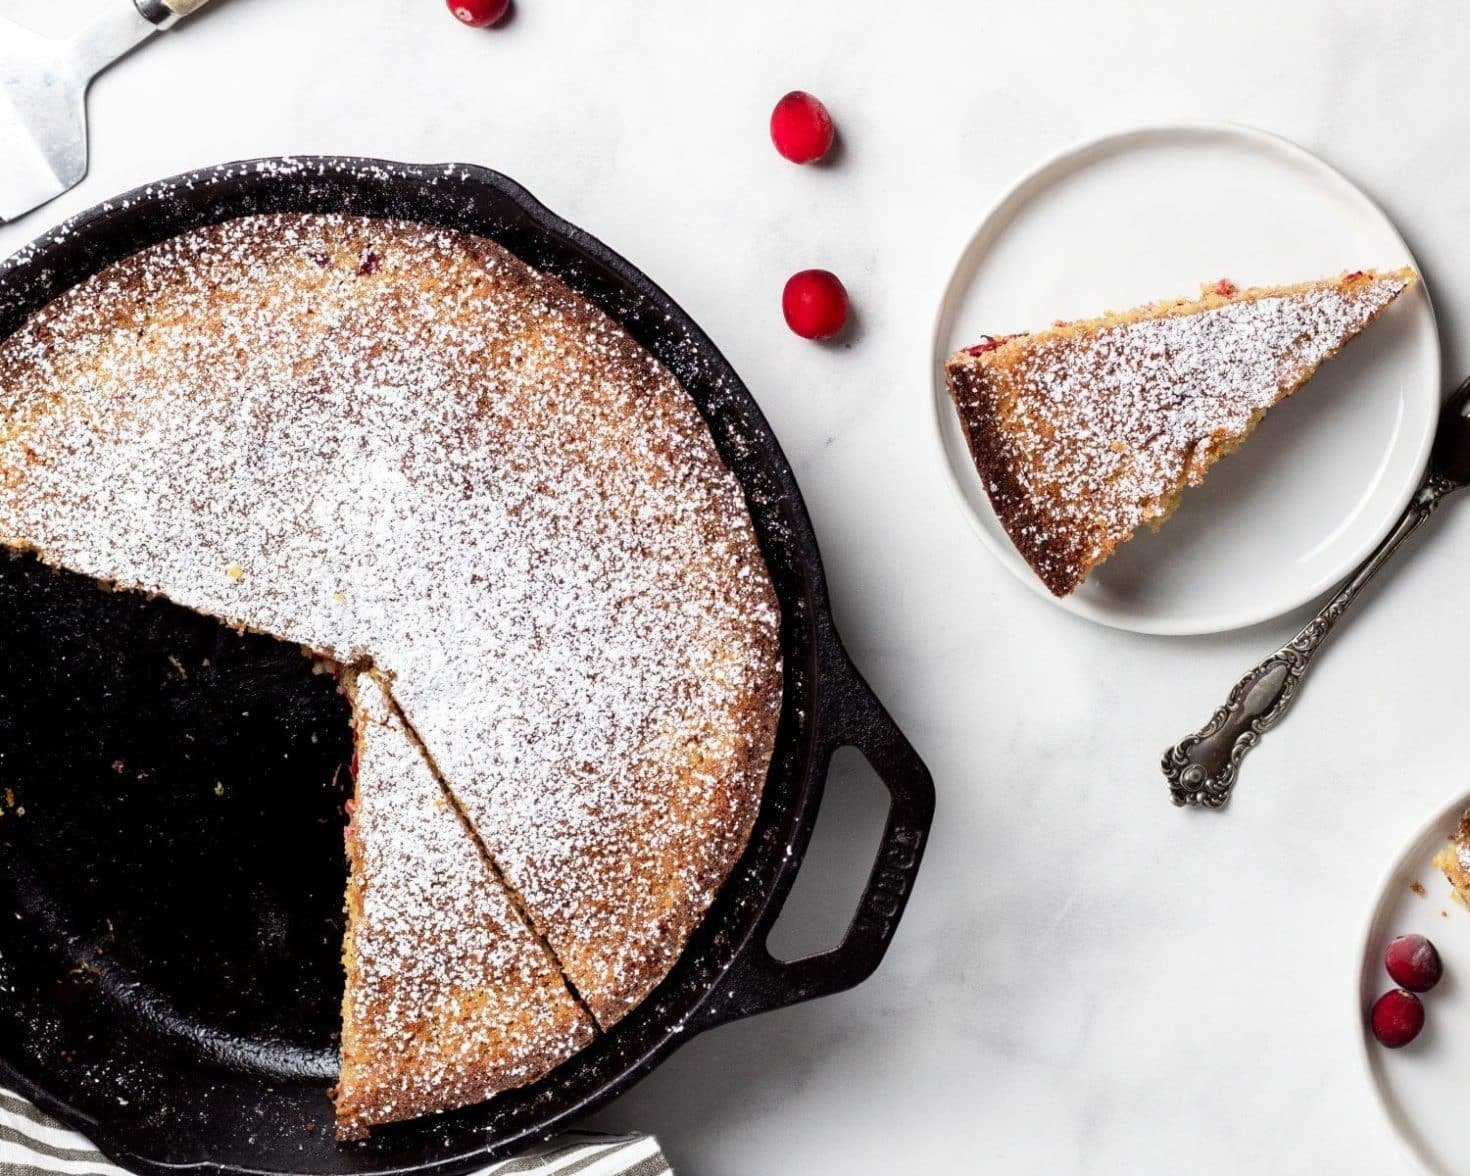 Overhead shot of cast iron skillet with cranberry cornmeal cake with a few slices missing. White plate with slice of cake and fork. Scattered cranberries on white background